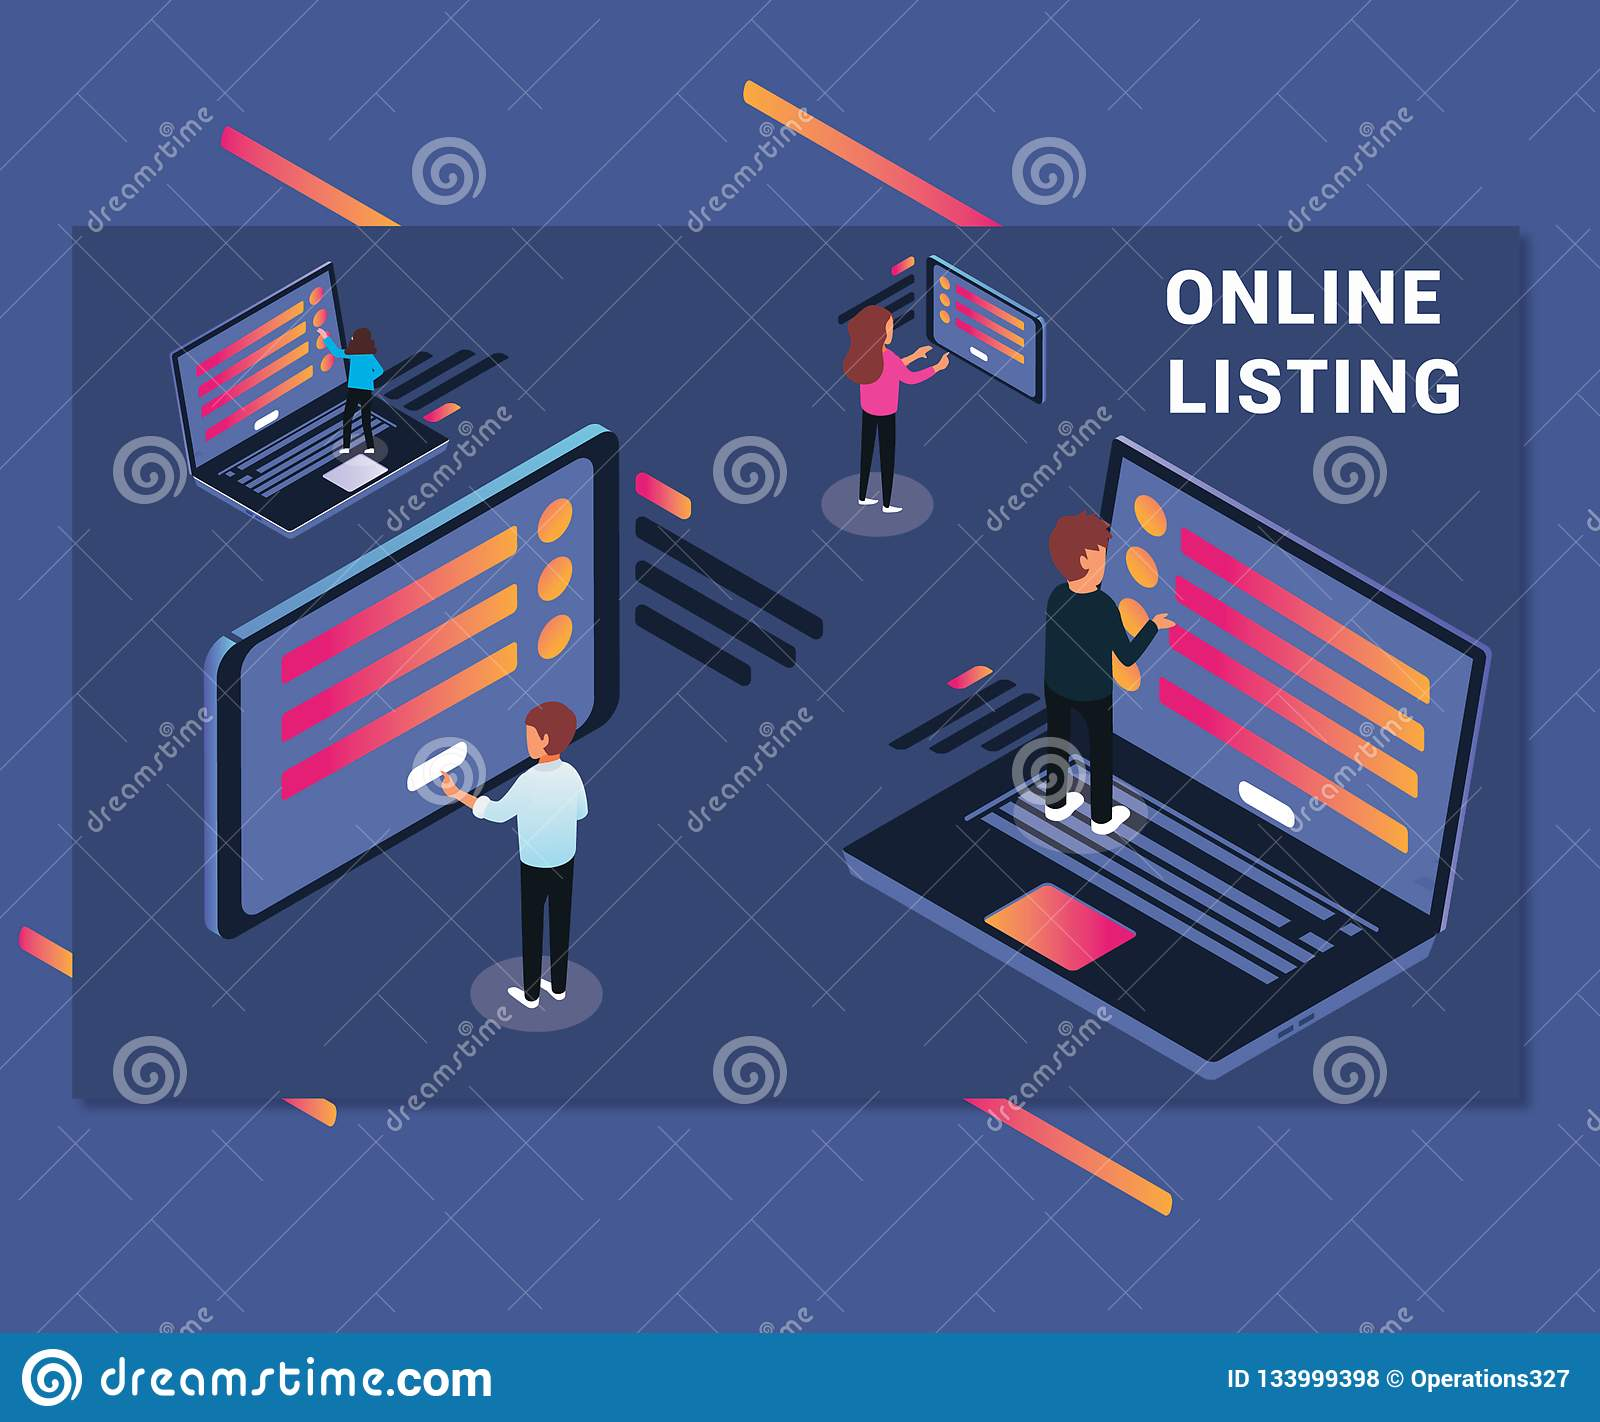 Isometric Artwork Online Listing of people Surfing Internet on Lapotp